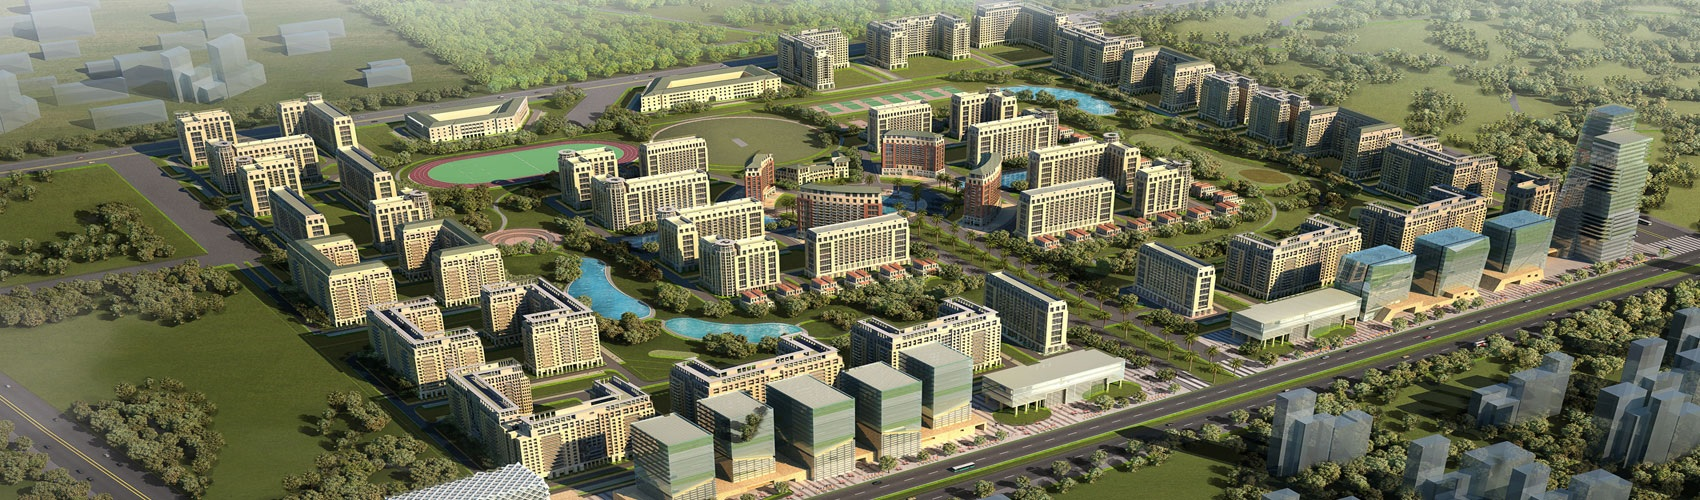 tower-view-Picture-gardenia-golf-city-2677836